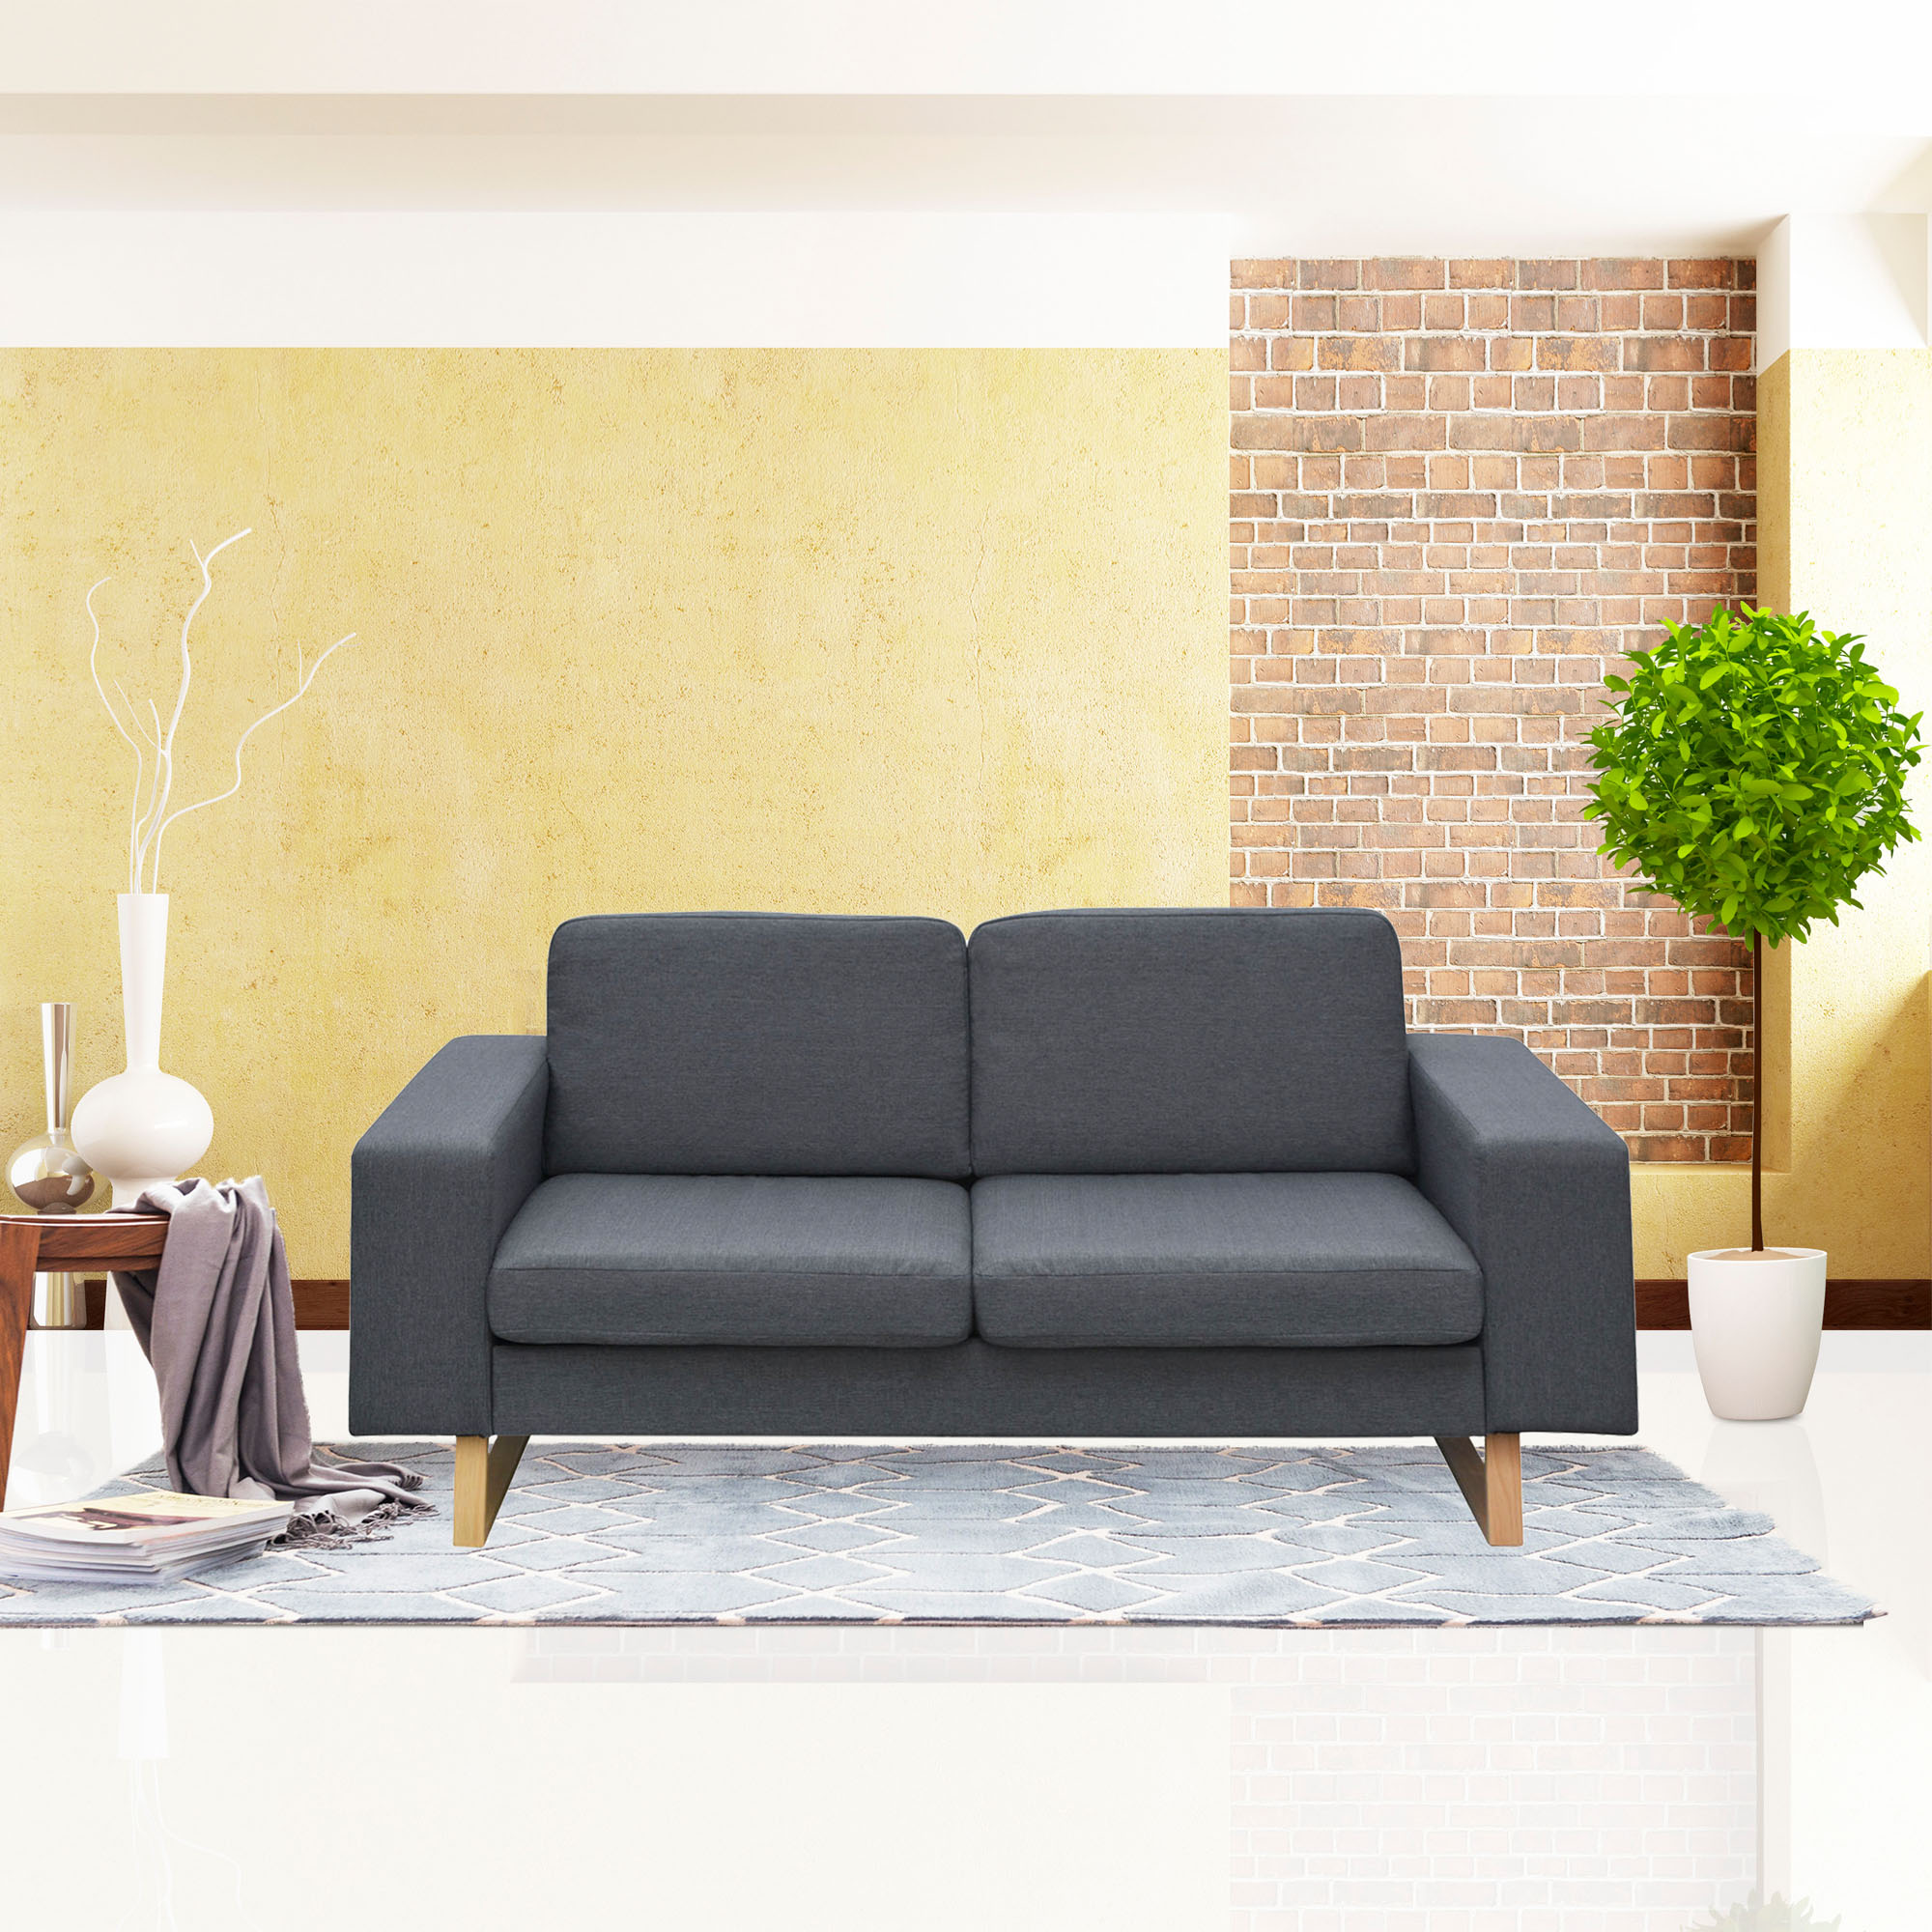 Cloud Mountain Fabric Loveseat Living Room Sofa Couch with Cushion, Dark Gray by Cloud Mountain